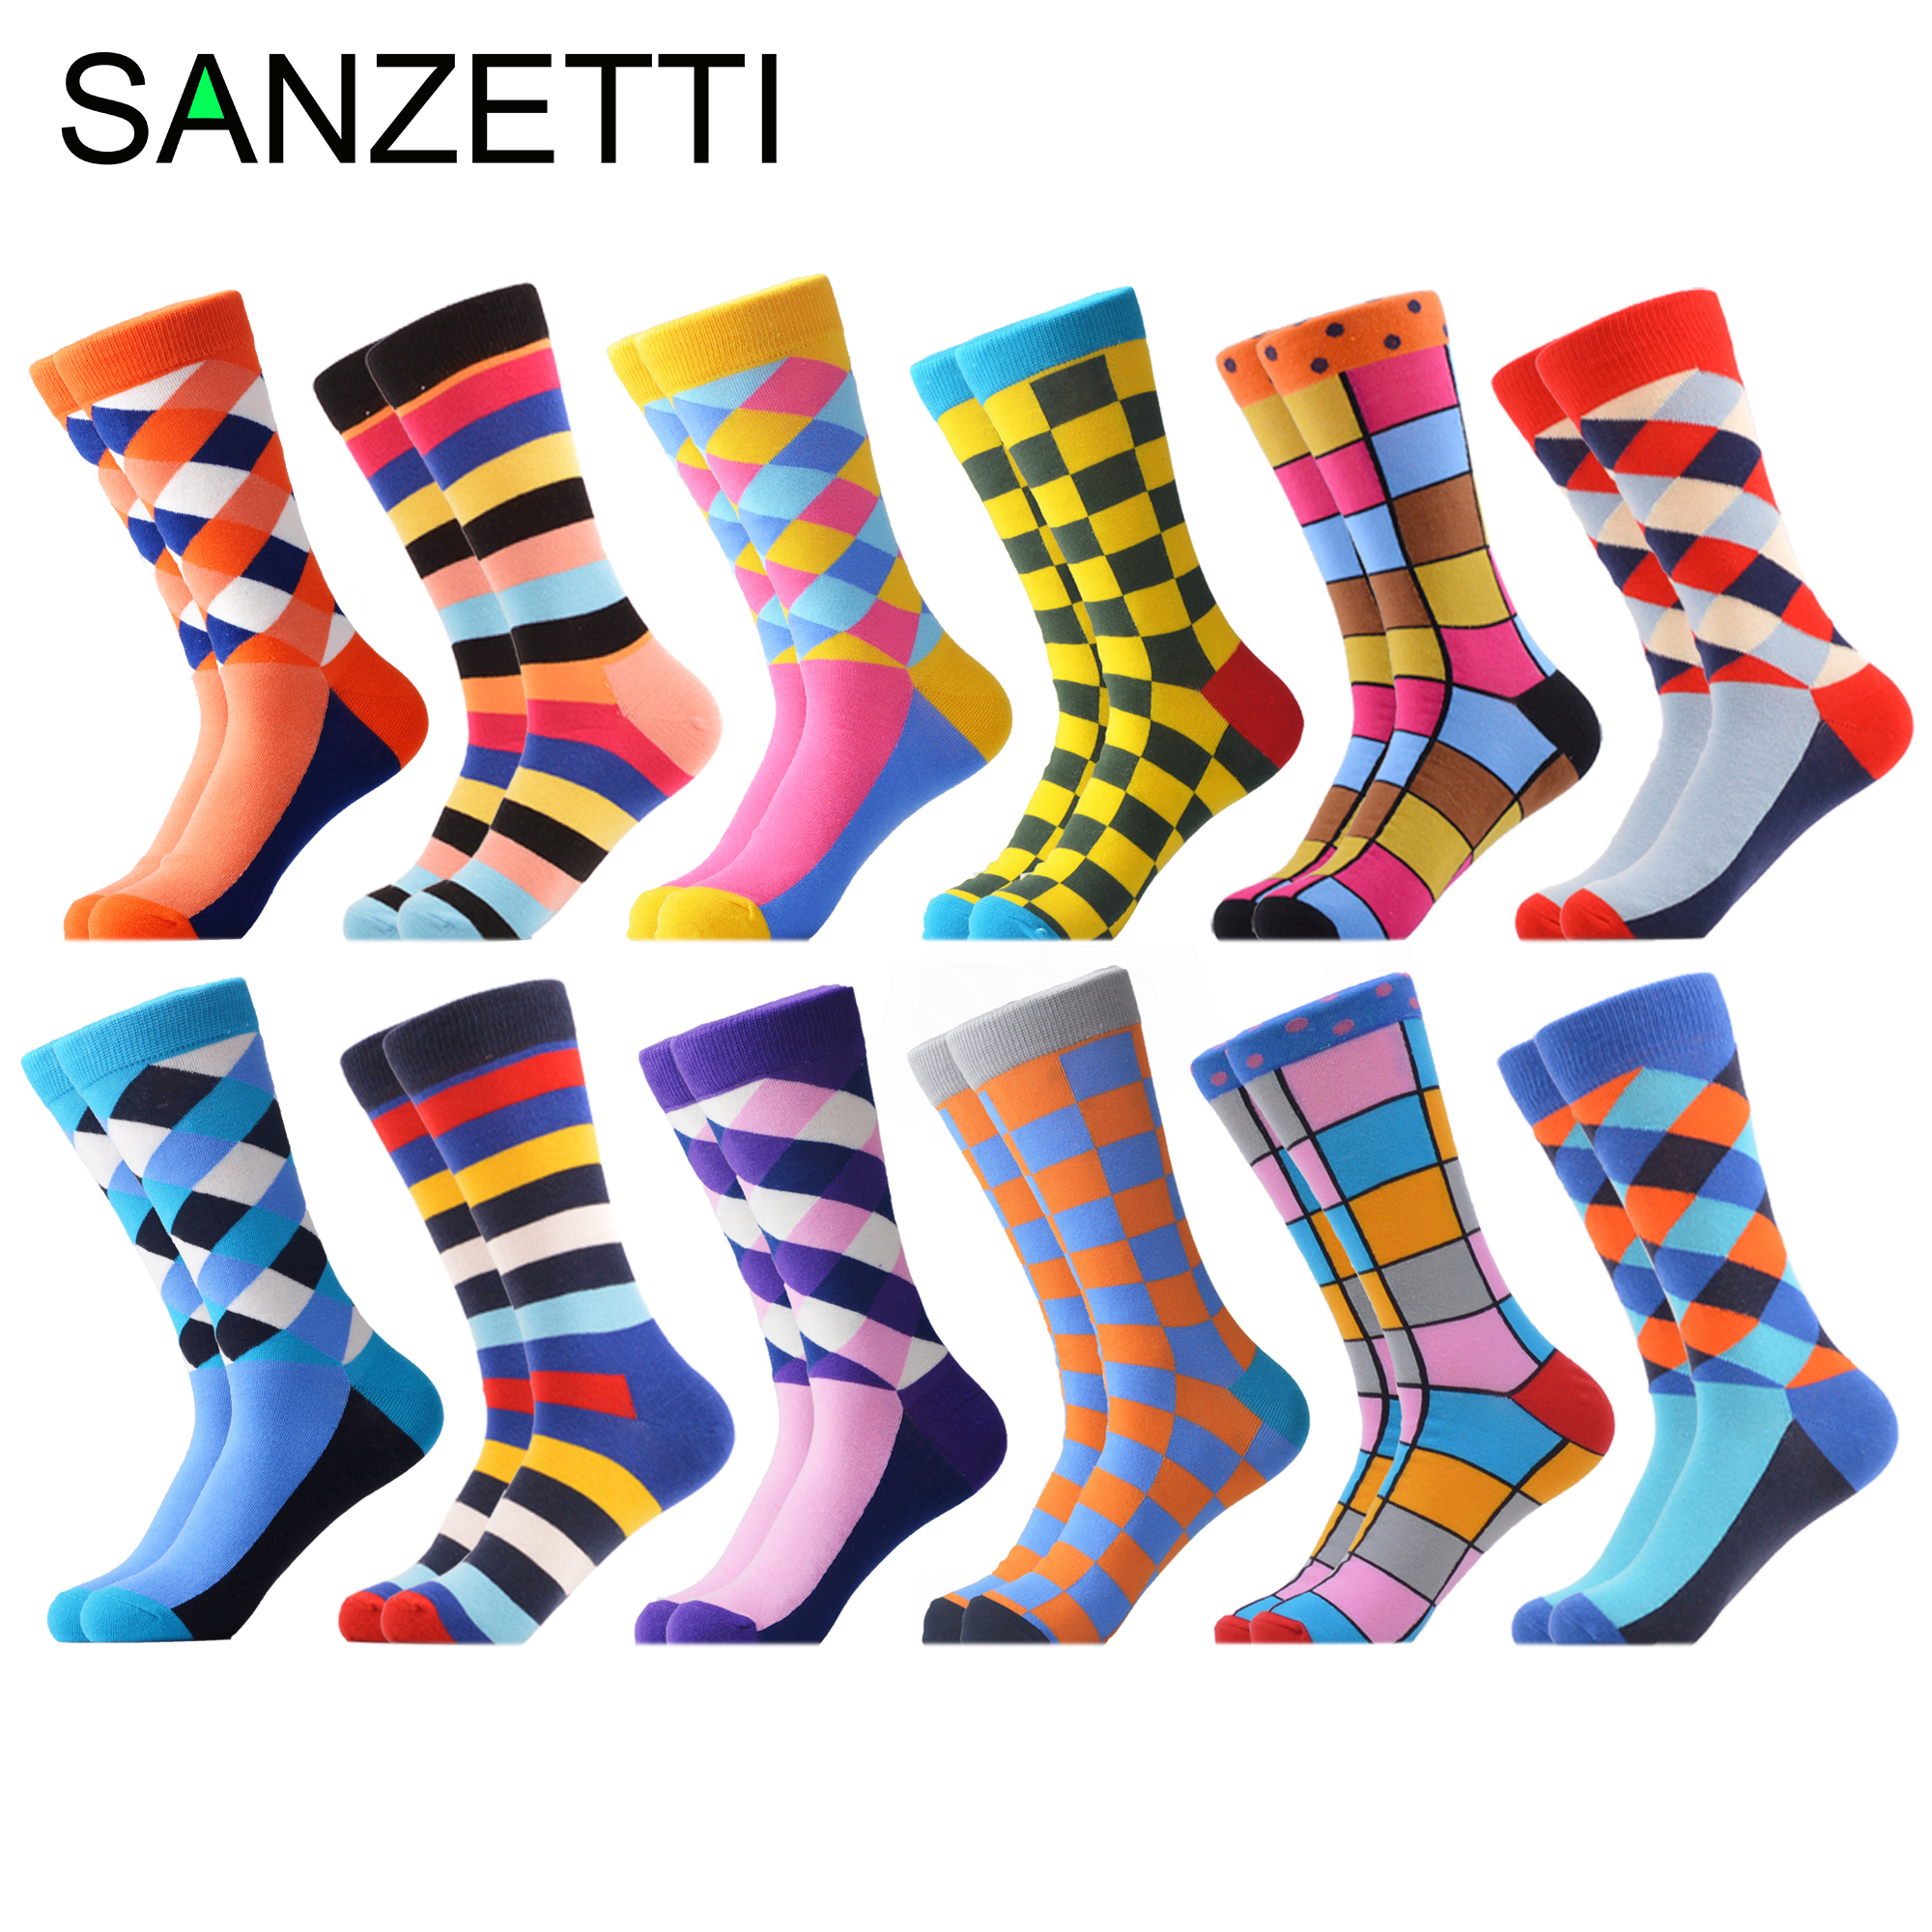 SANZETTI 12 Pairs/Lot 2020 Newest Winter Warm Colorful Men's Casual Combed Cotton Happy Crew Socks Novelty Dress Wedding Socks